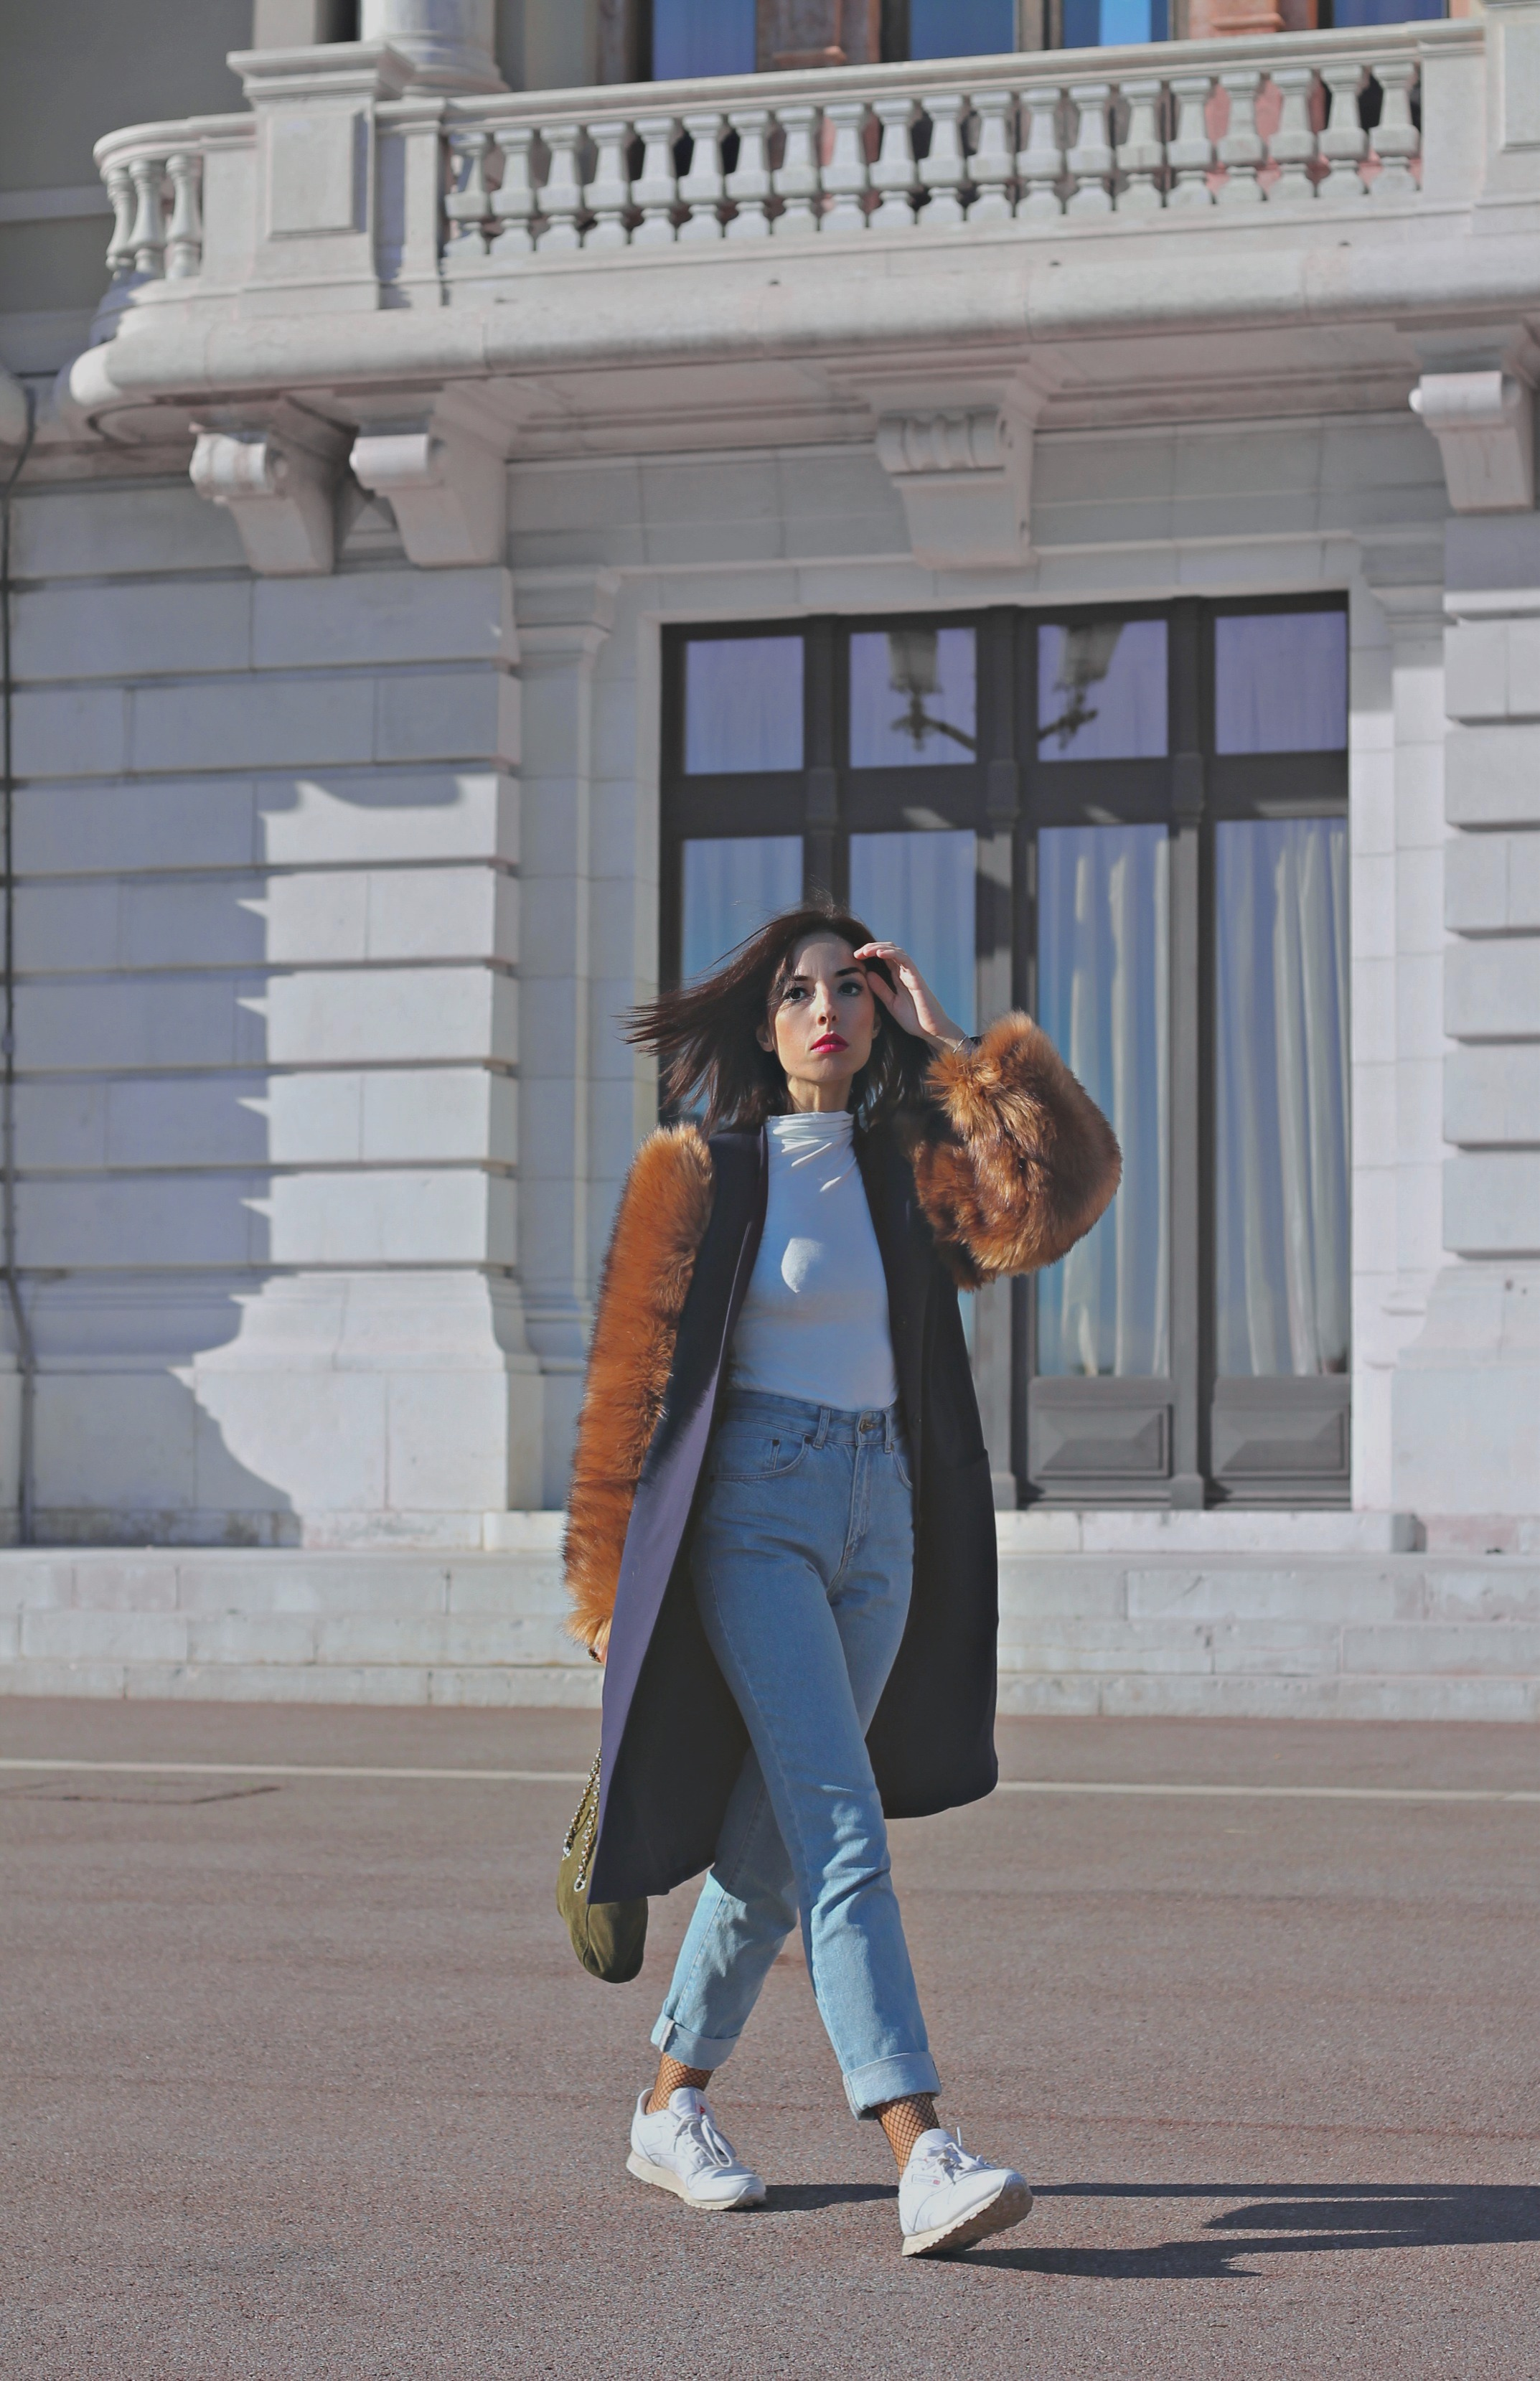 Un anno da ricordare, un anno da ricordare 2016, theladycracy.it, elisa bellino, asos white inverno 2016, mom jeans outfit, casual chic look blogger, casual chic style outfit, casual chic inverno outfit, fashion blogger 2017, fashion blog, fashion blogger italiane 2017, fashion blogger famose 2016, fashion blogger italiane più seguite, blog moda 2017,